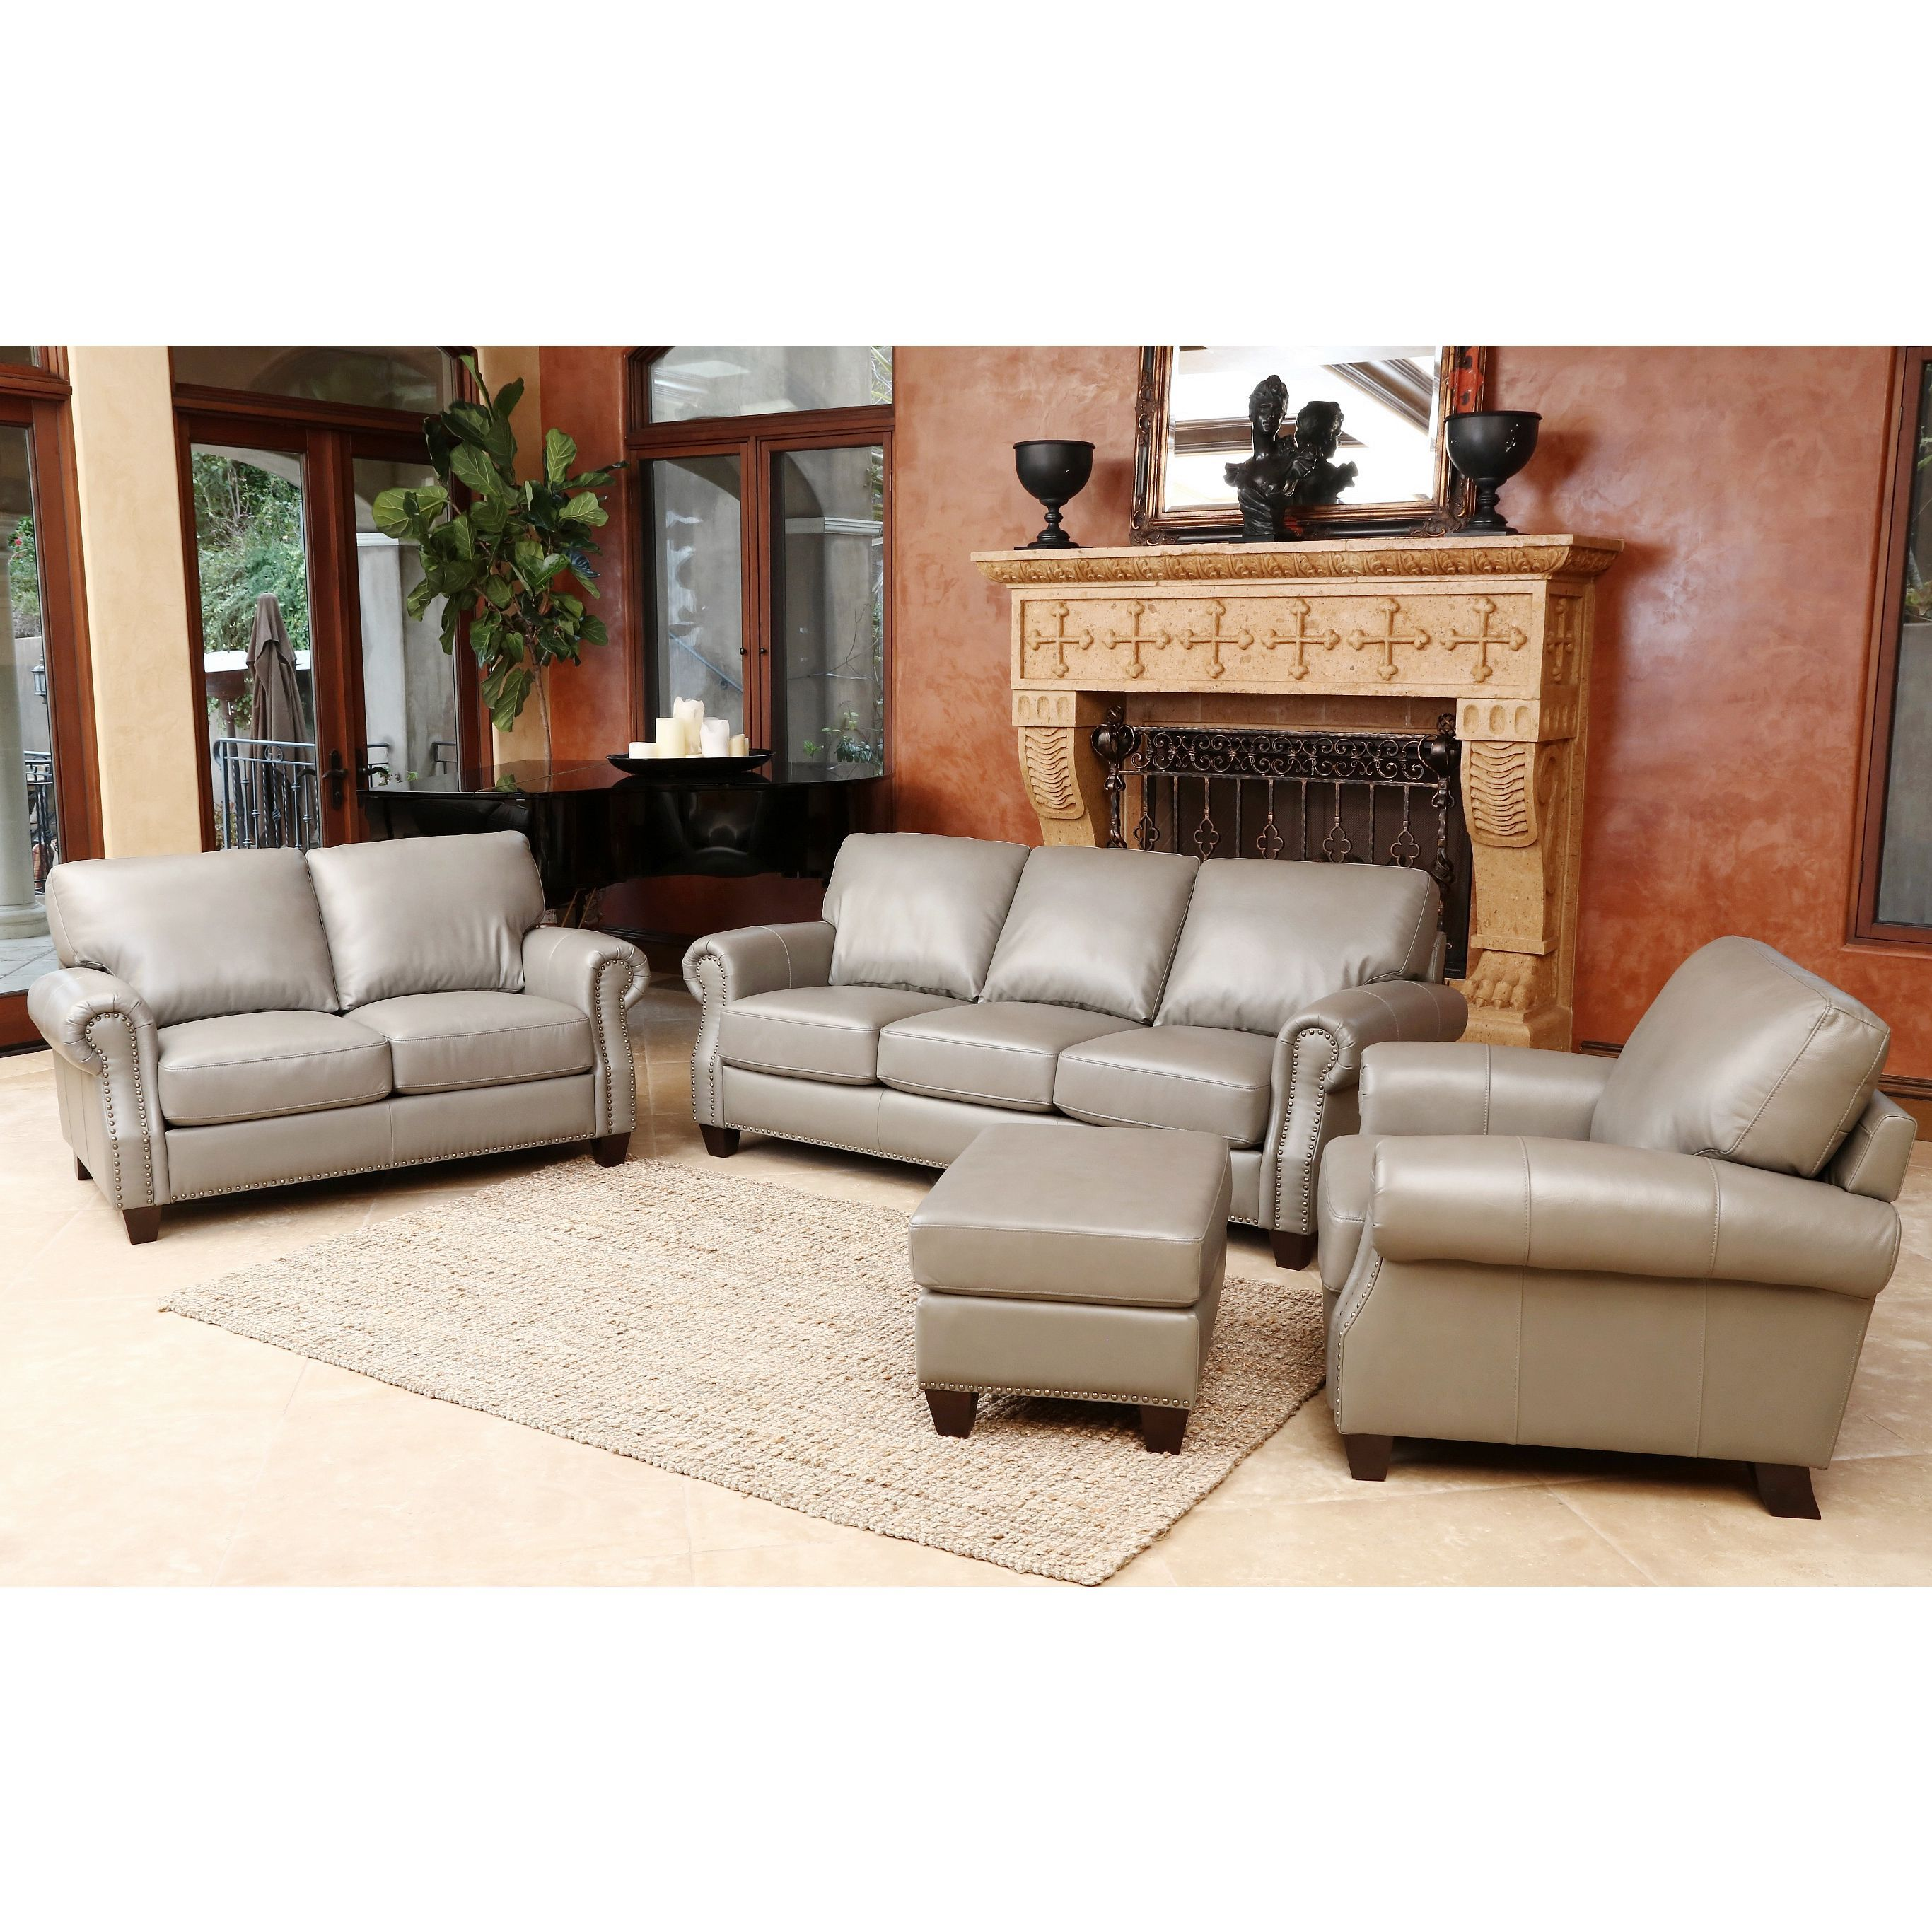 Abbyson living landon piece top grain leather sofa loveseat